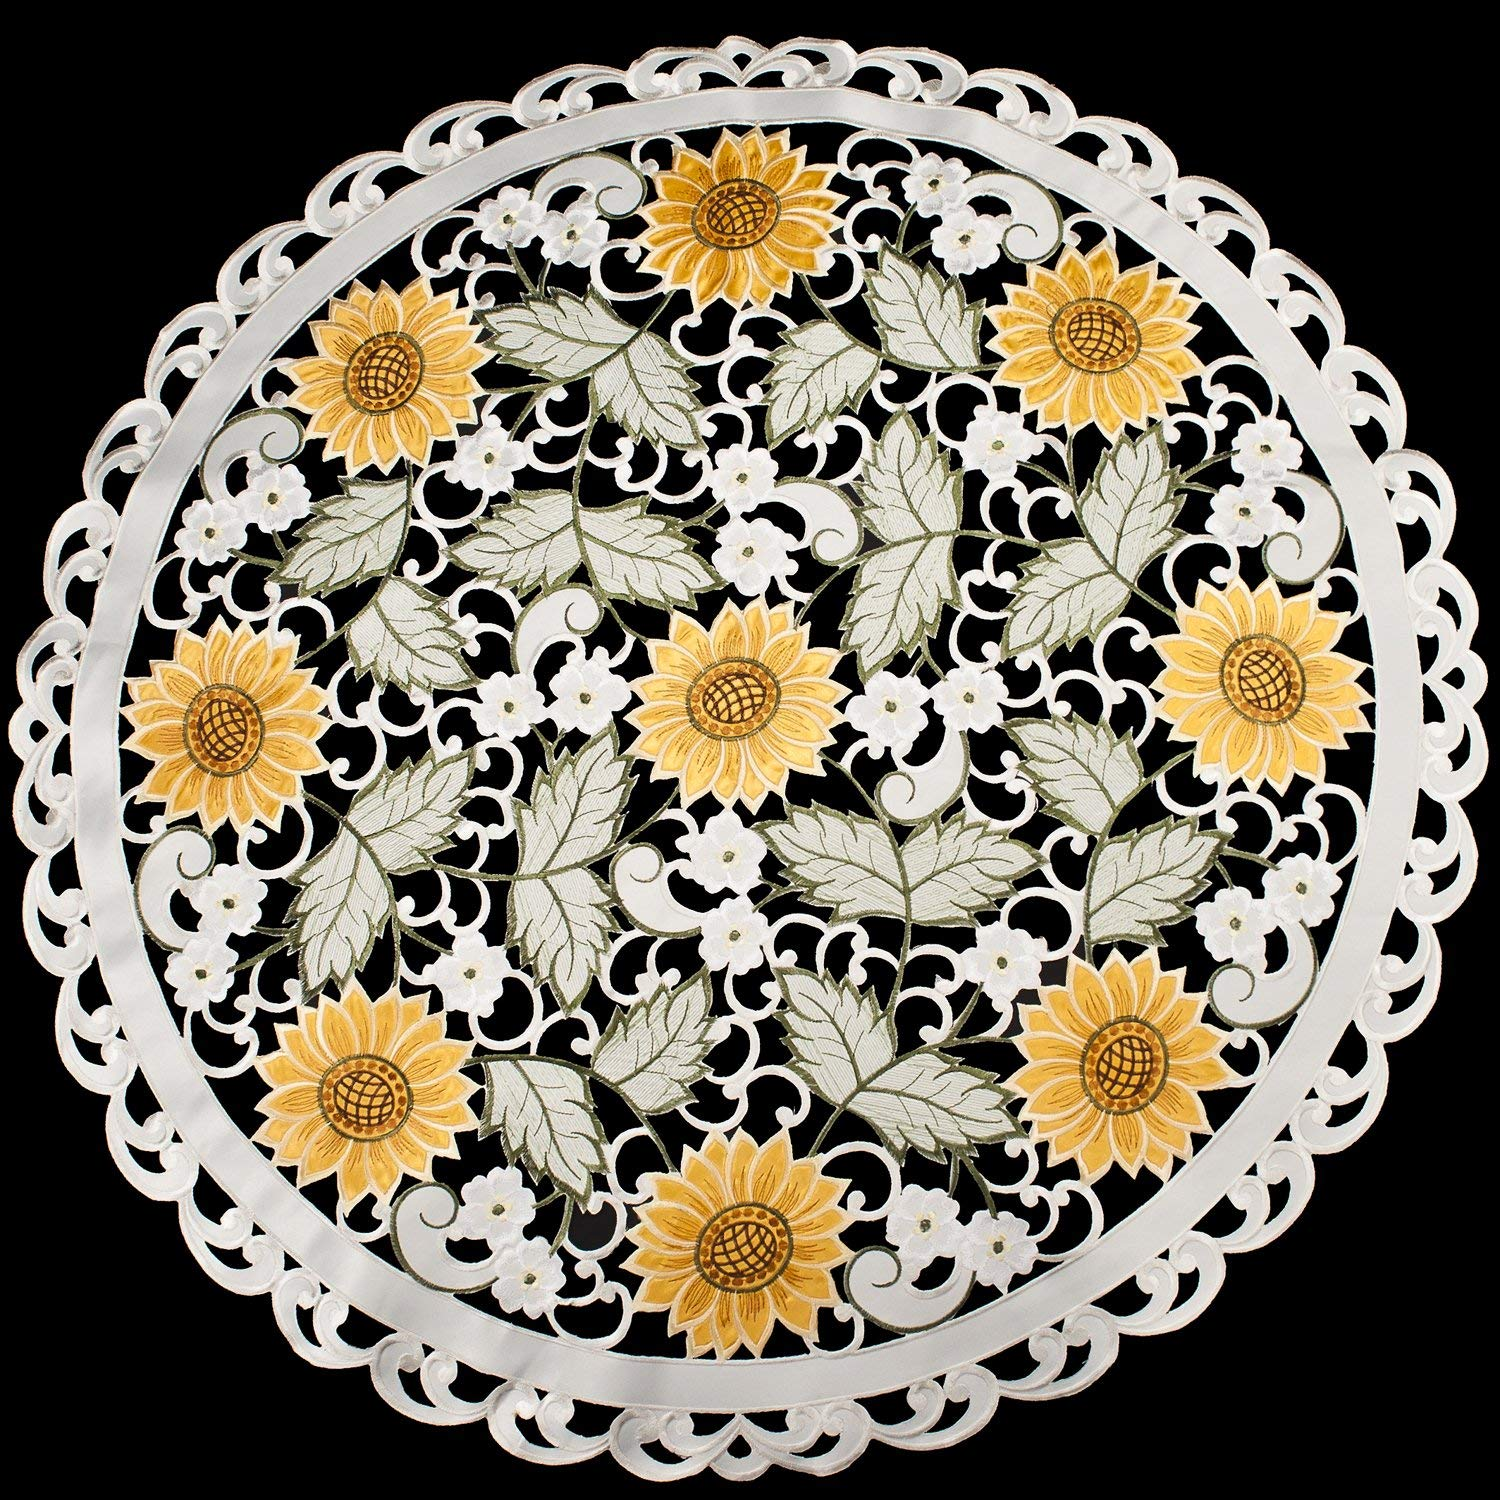 "Linens, Art and Things Embroidered Table Topper Doily Table Centerpiece Small Tablecloth Open Weave Cut Work Sunflower and White Daisy on Ivory 36"" Round"